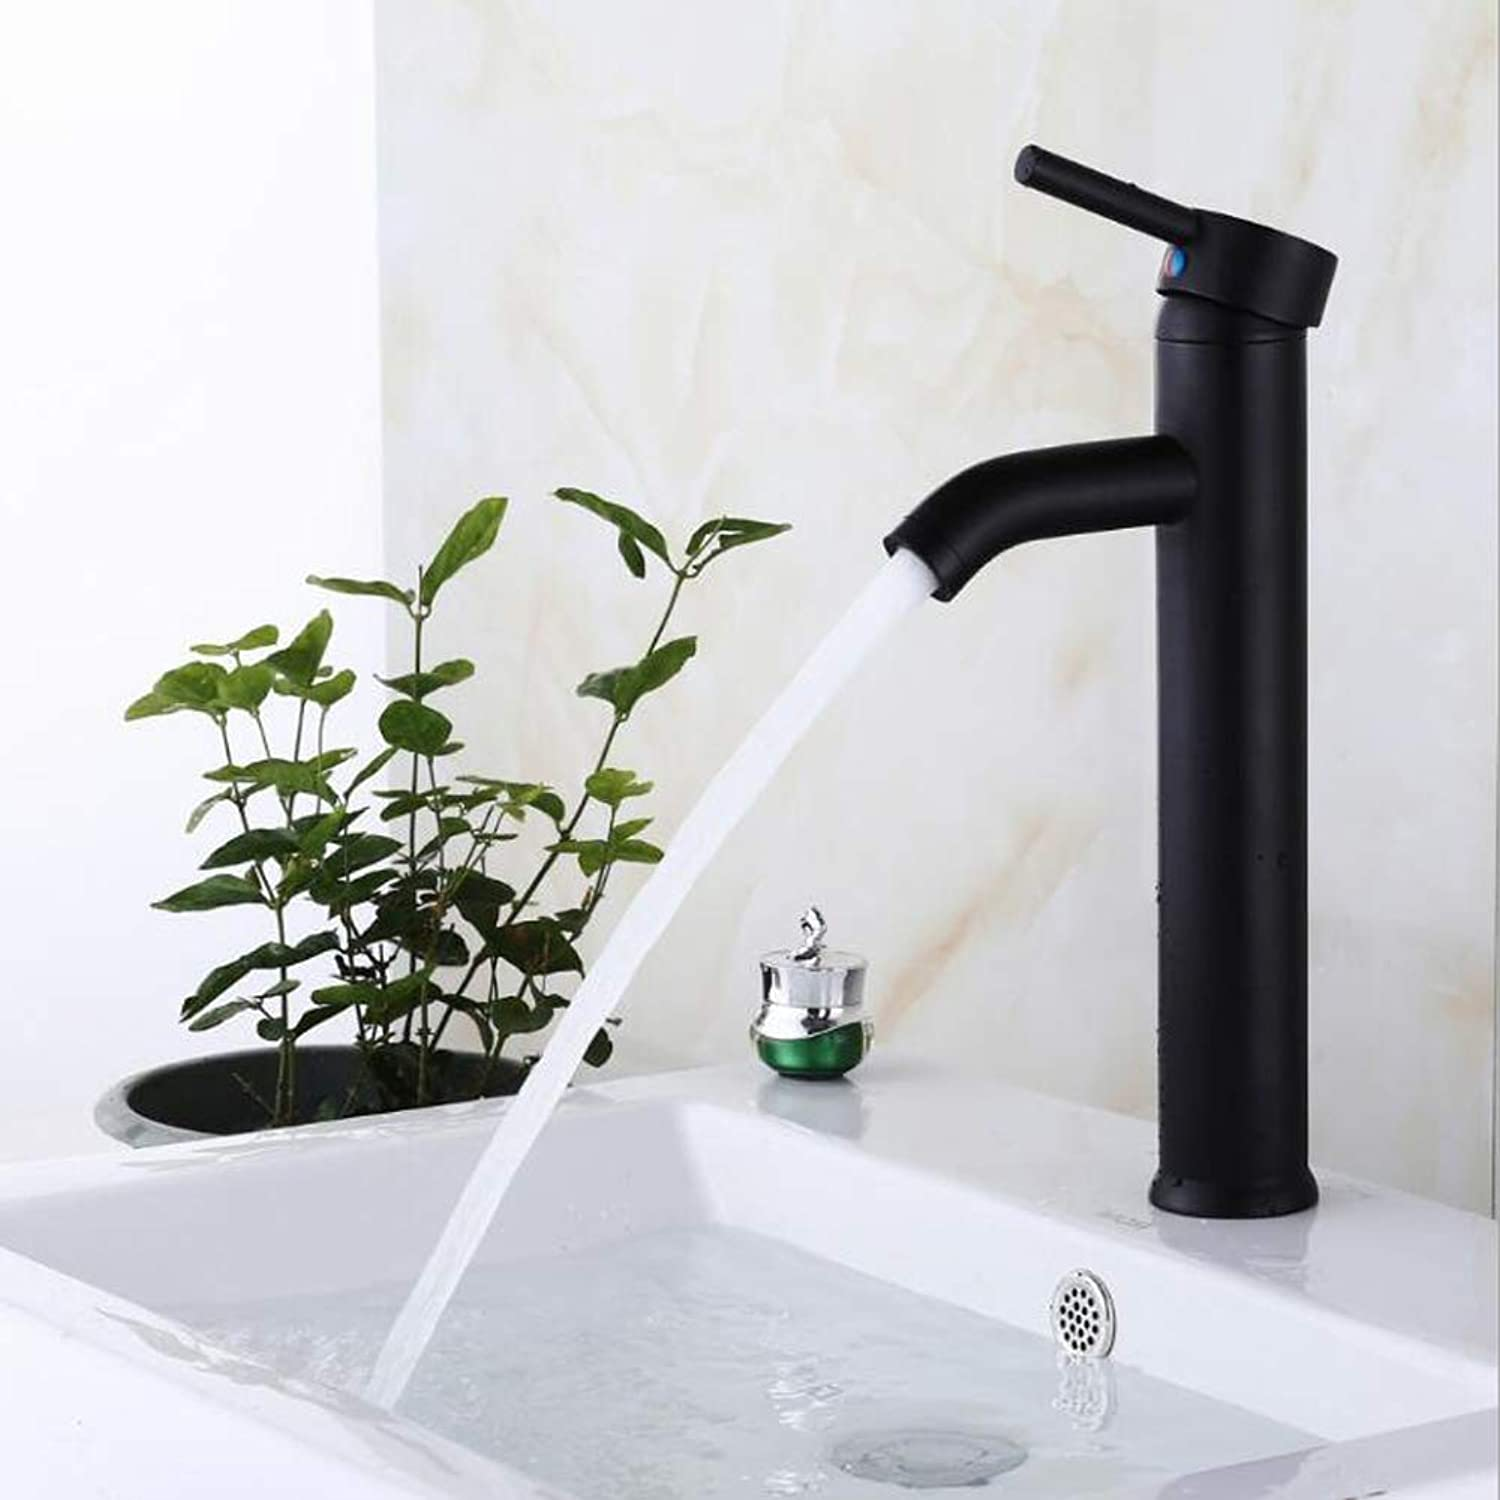 Black Solid Bathroom Sink Faucet Hot And Cold Water Basin Taps Brass Valve One Hole Hands free One Hole Chrome,Blackbasinmixer